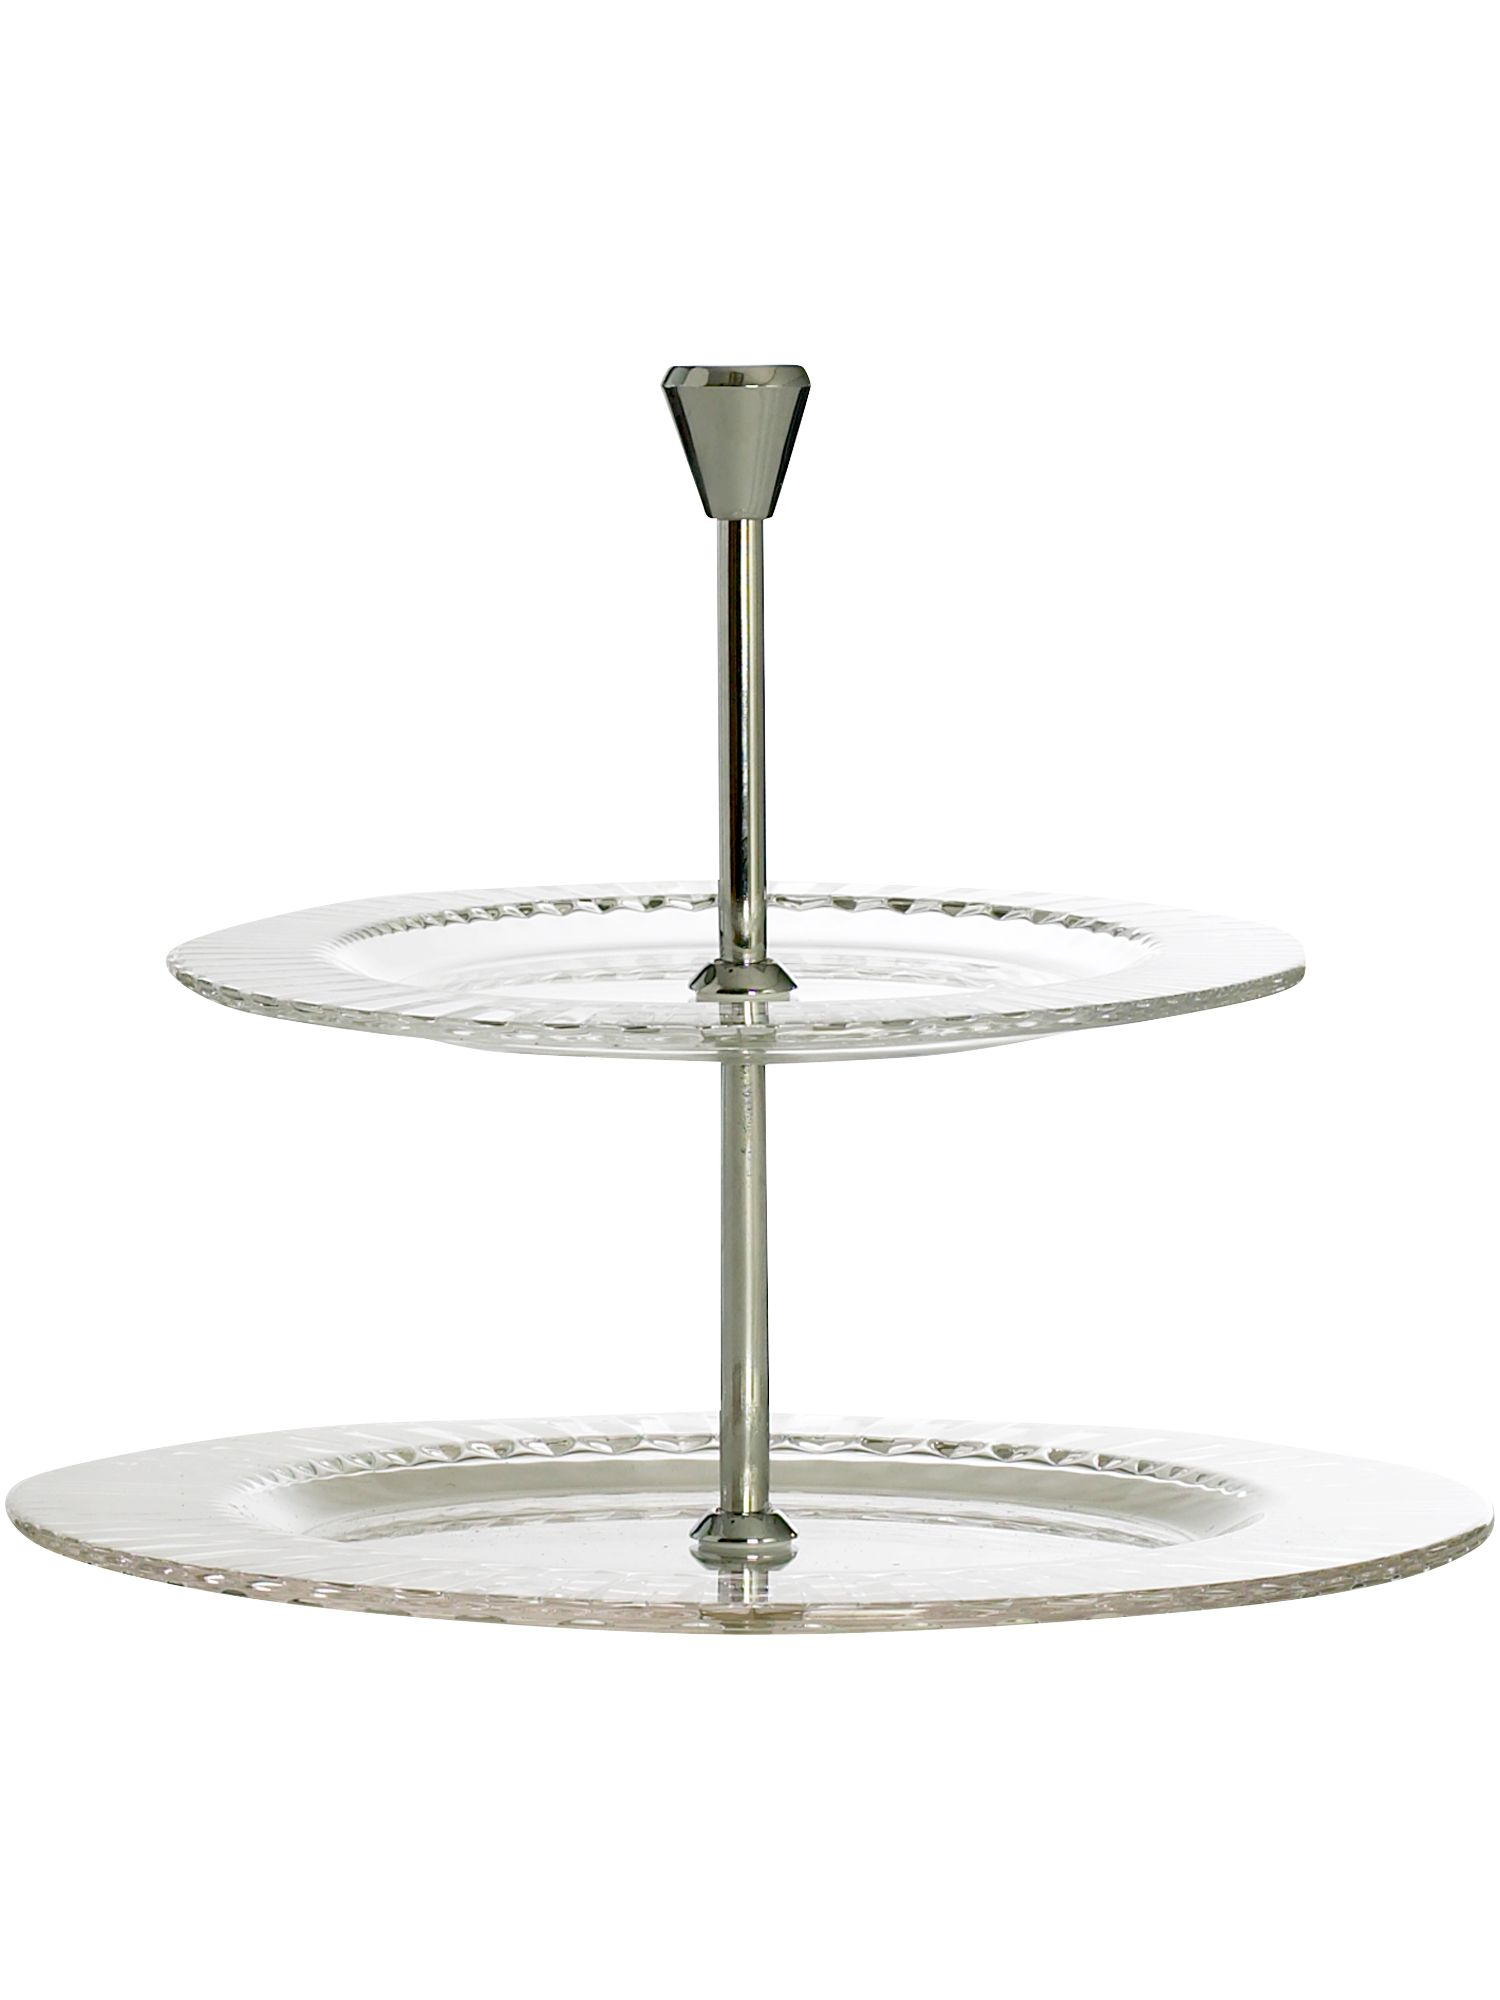 Linea Diva two tiered glass cake plate